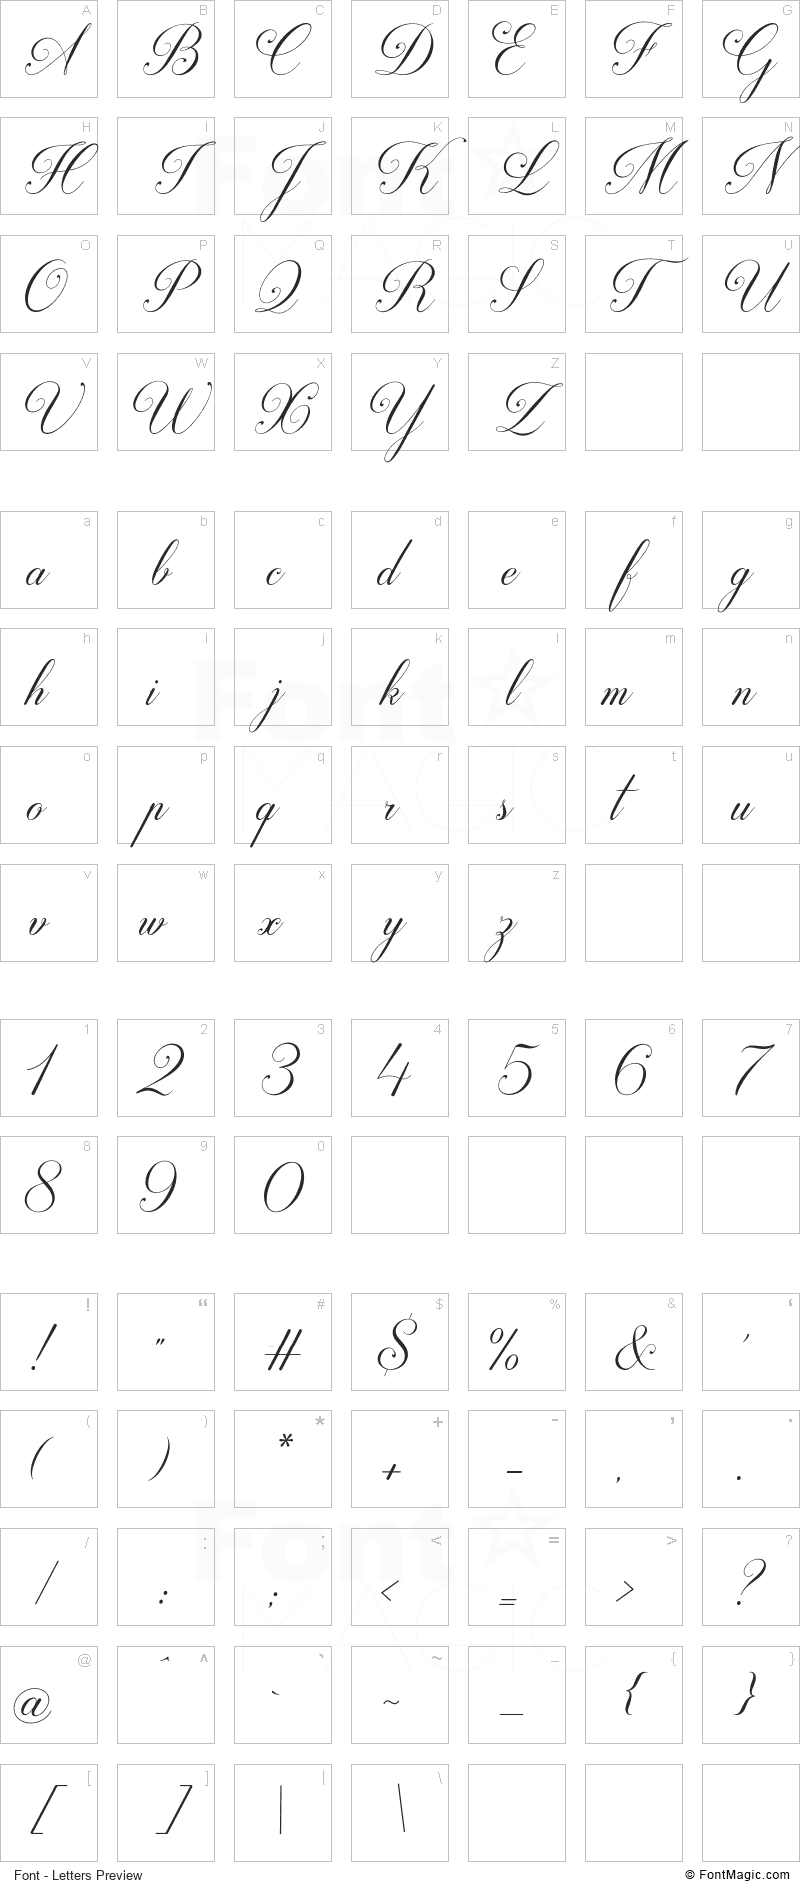 Darleston Font - All Latters Preview Chart